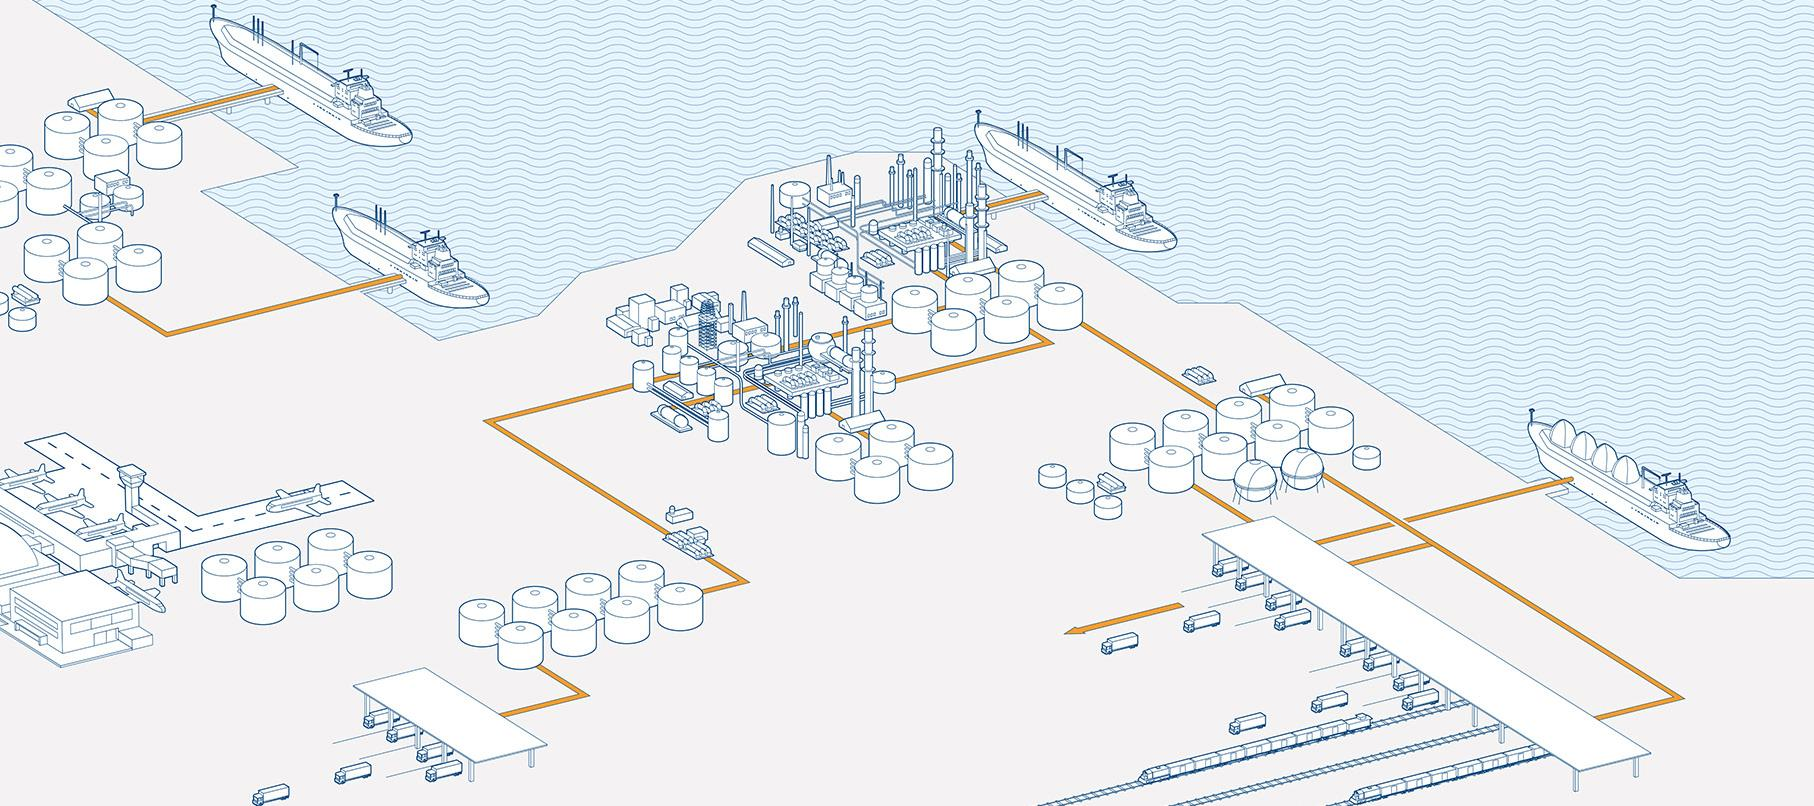 small resolution of abb provides solutions for the whole hydrocarbon supply chain including production processing transportation storage and distribution